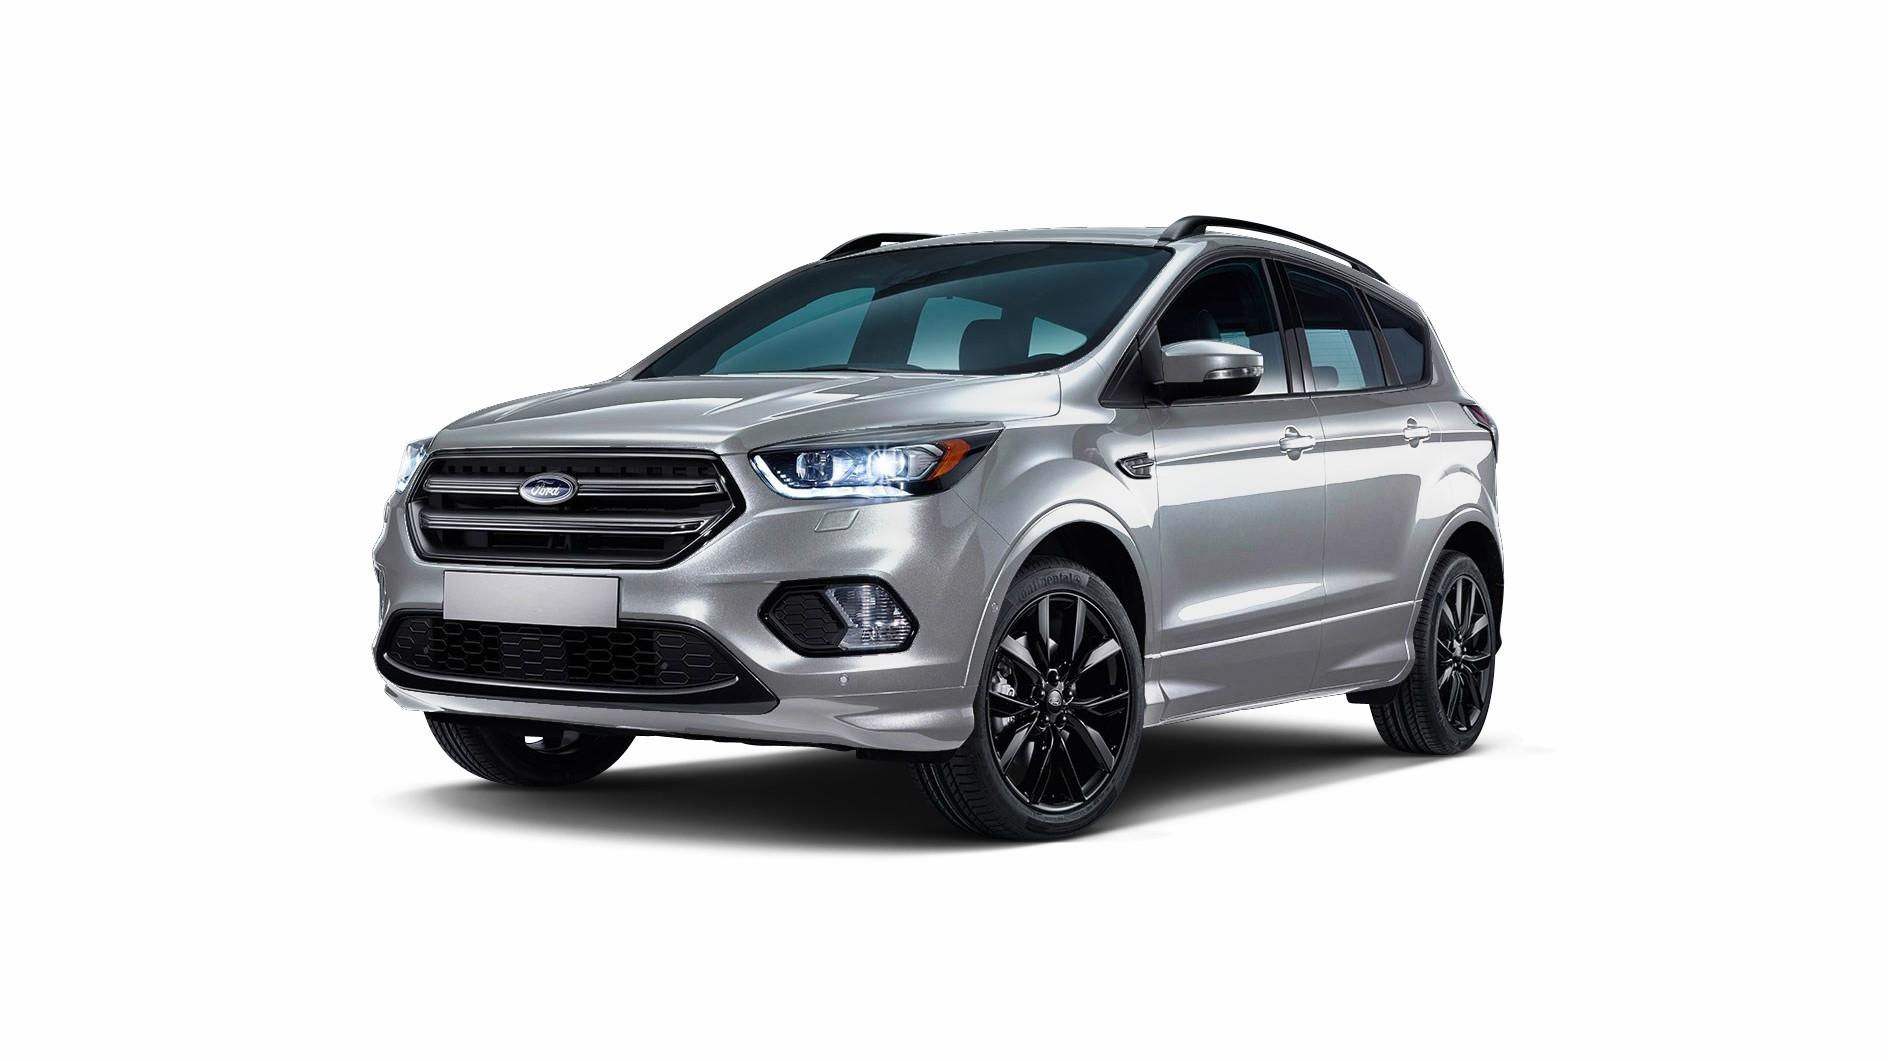 ford kuga nouveau 4x4 et suv 5 portes diesel 2 0 tdci 180 auto 4x4 bo te automatique. Black Bedroom Furniture Sets. Home Design Ideas